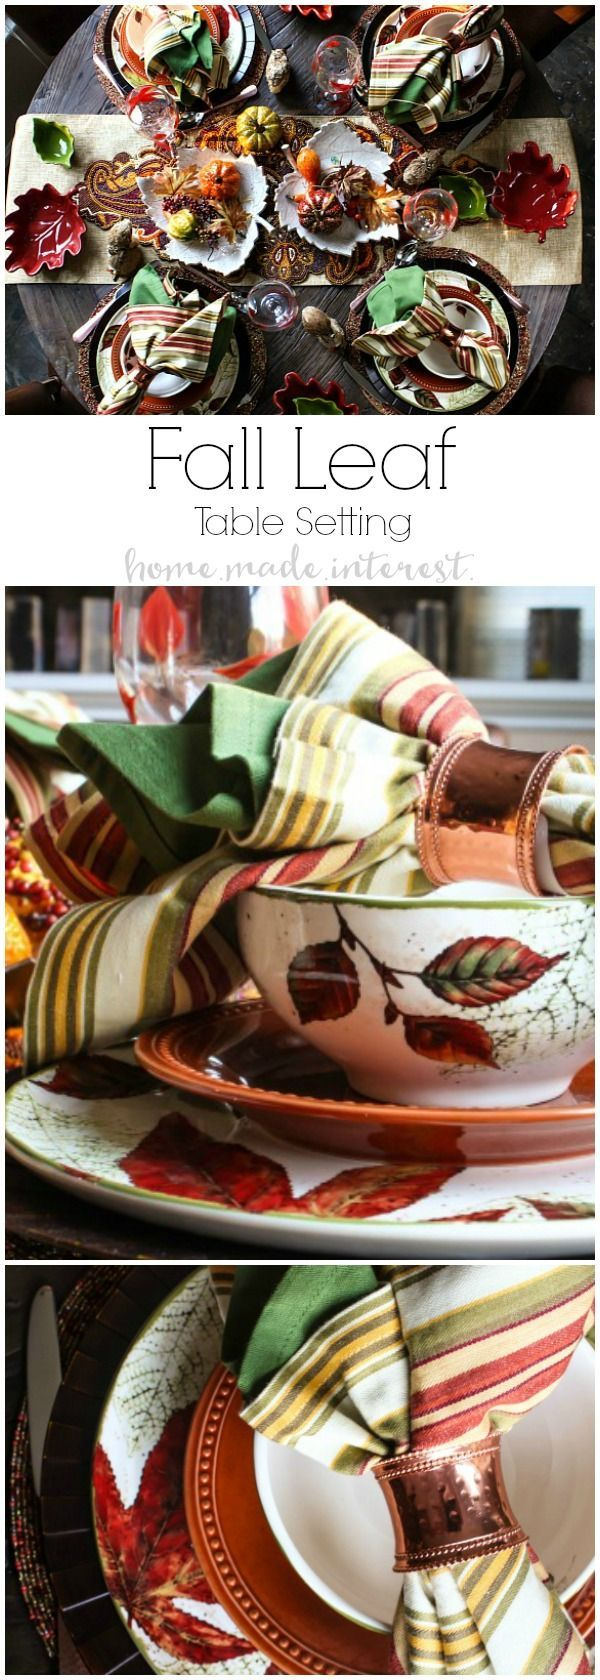 522 best Holiday | Thanksgiving Crafts \u0026 Decorations images on ...